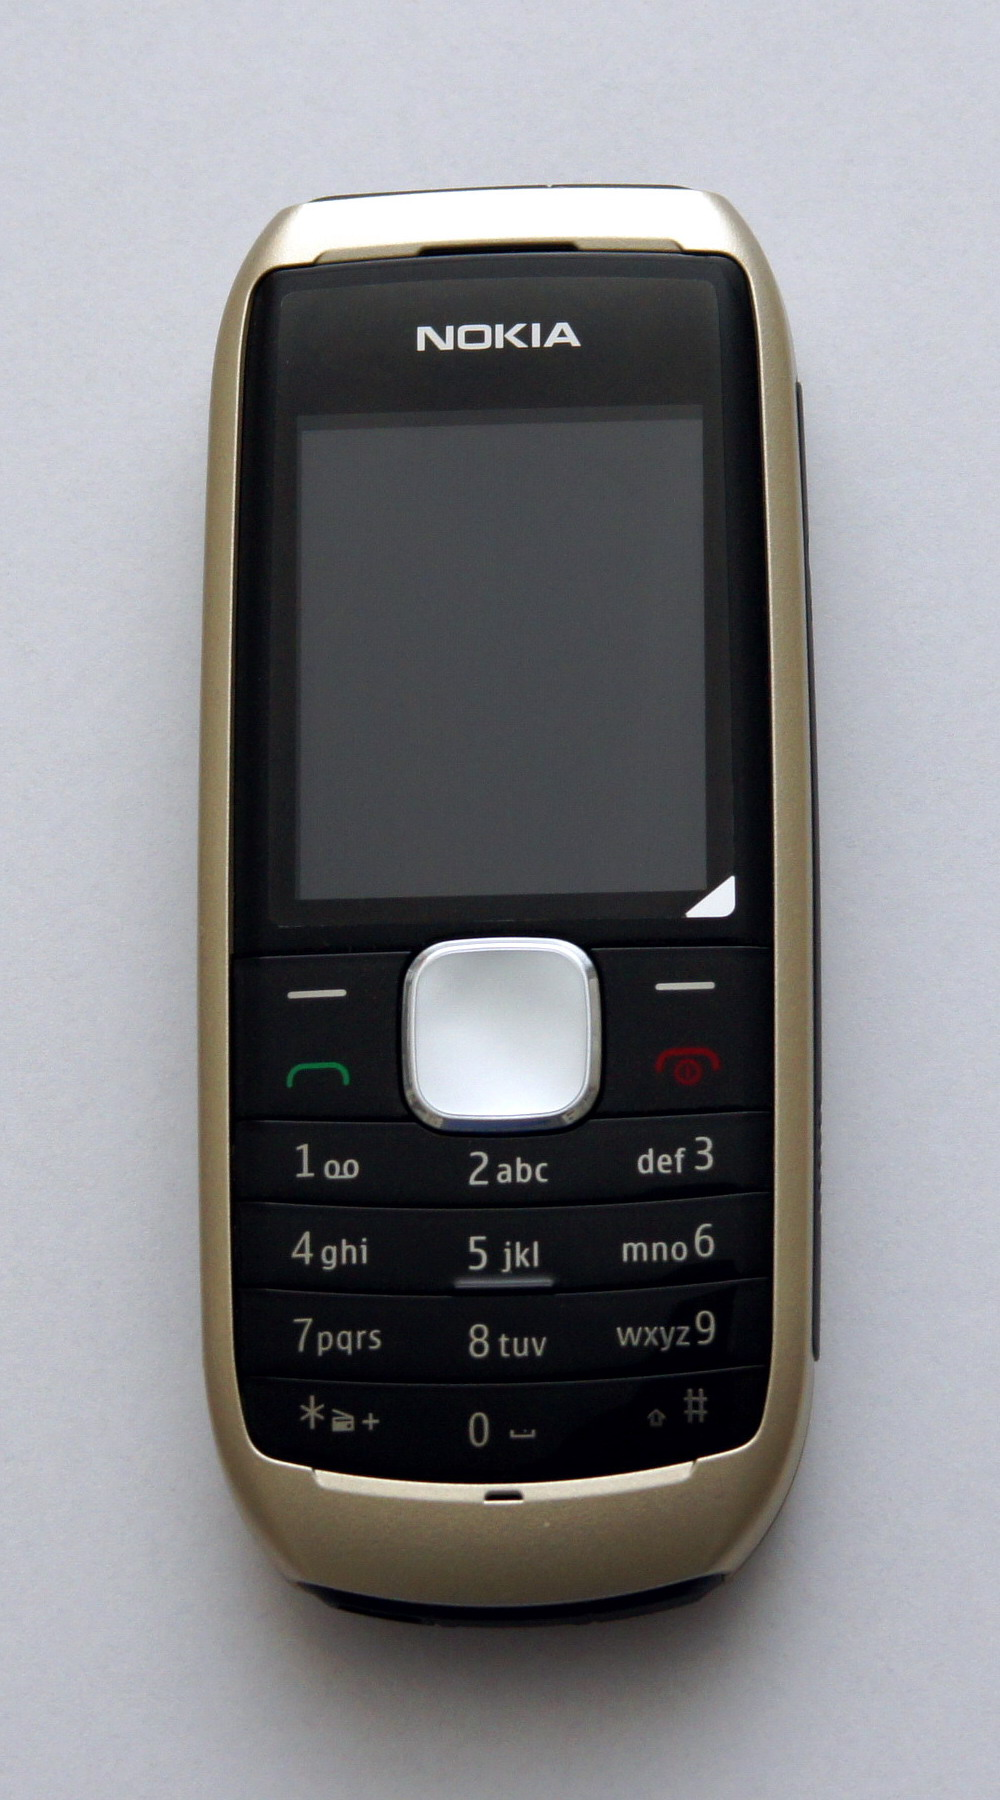 File Nokia 1800 jpg   Wikipedia  the free encyclopedia